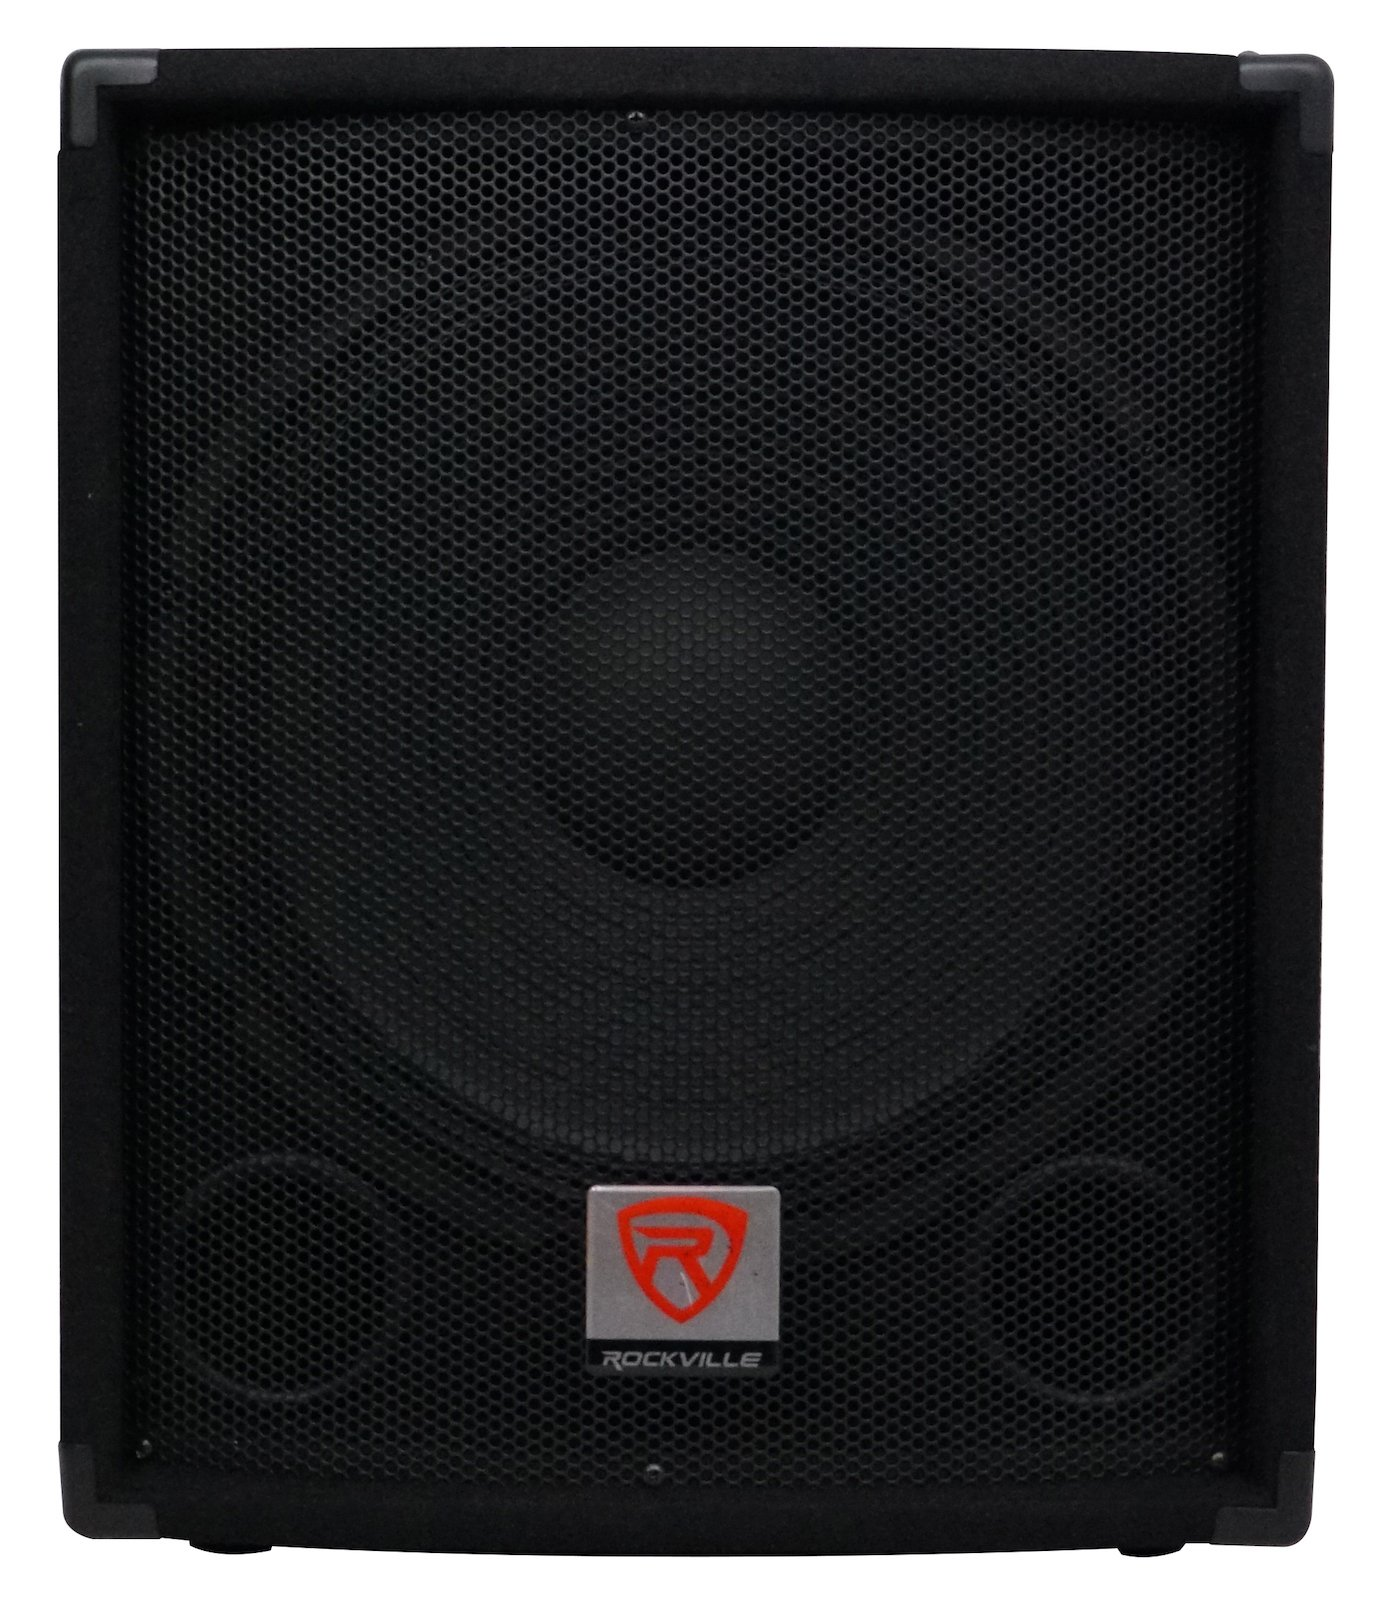 Rockville SBG1154 15'' 800 Watt Subwoofer Sub For Church Sound Systems by Rockville